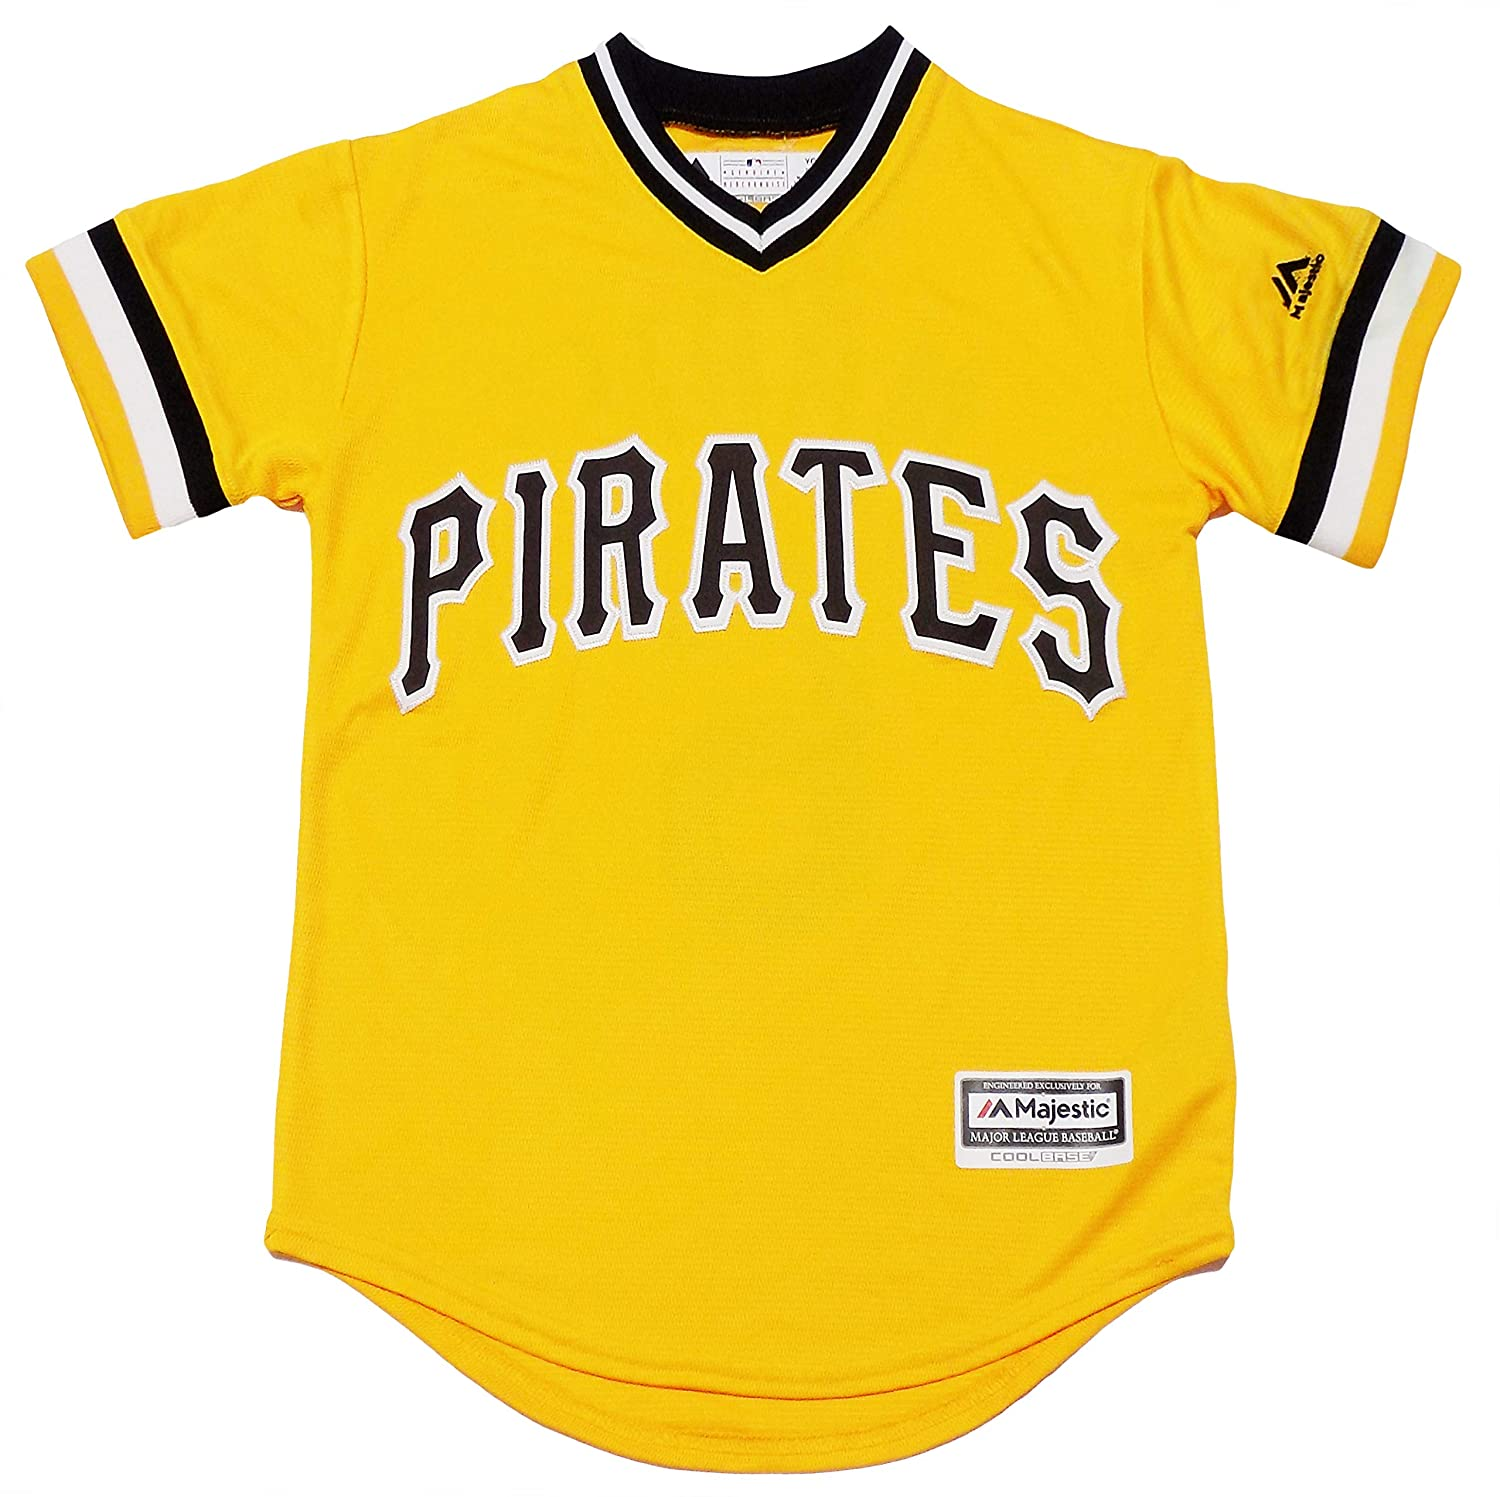 reputable site e70c5 d6769 Amazon.com: Starling Marte Pittsburgh Pirates Yellow Youth ...